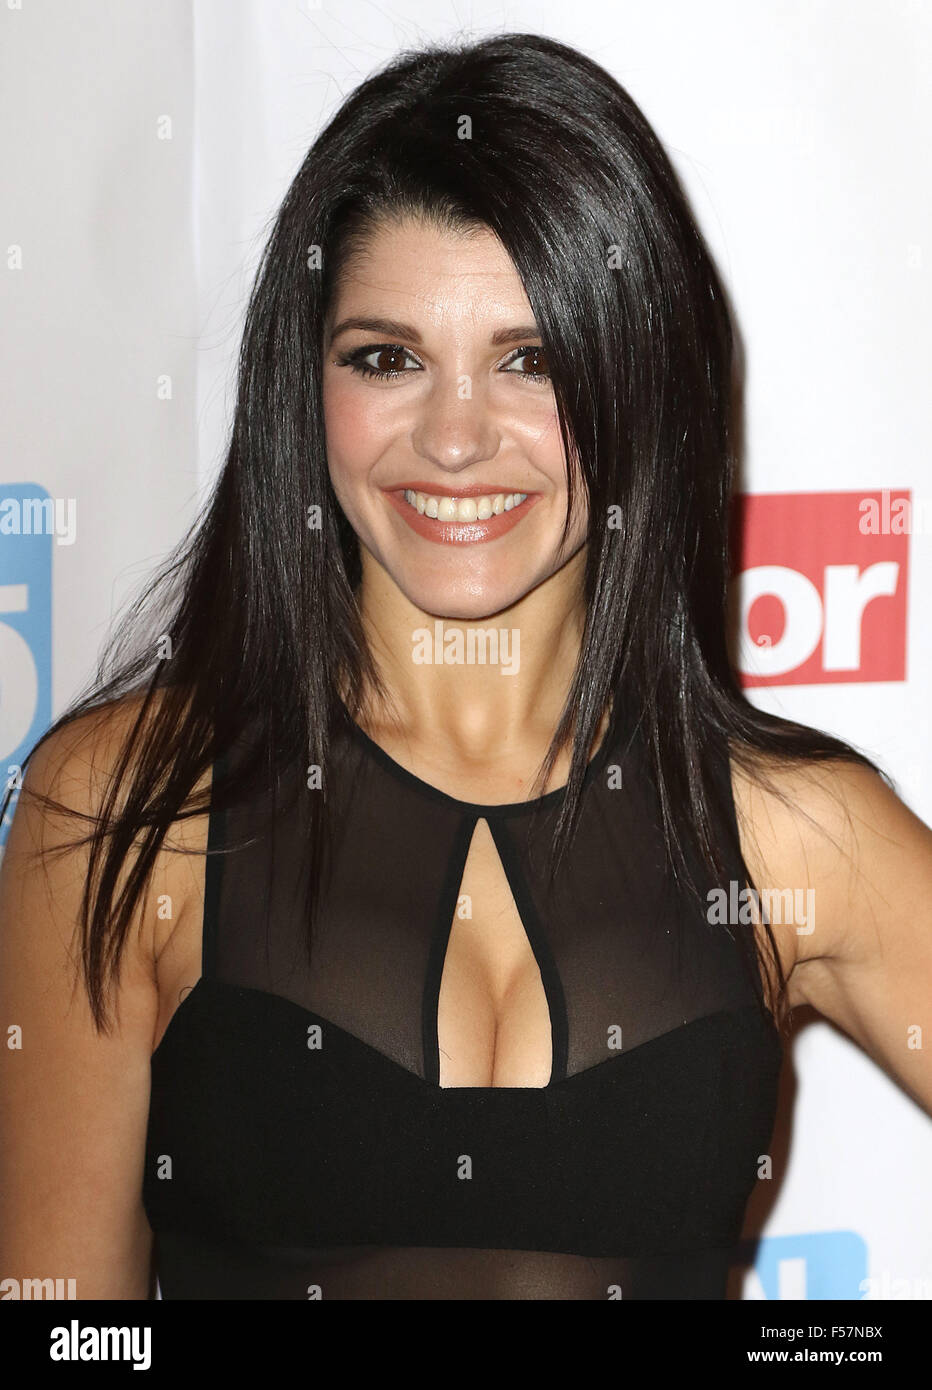 October 21, 2015 - Natalie Anderson attending the 'Daily Mirror & RSPCA Animal Hero Awards 2015' at - Stock Image